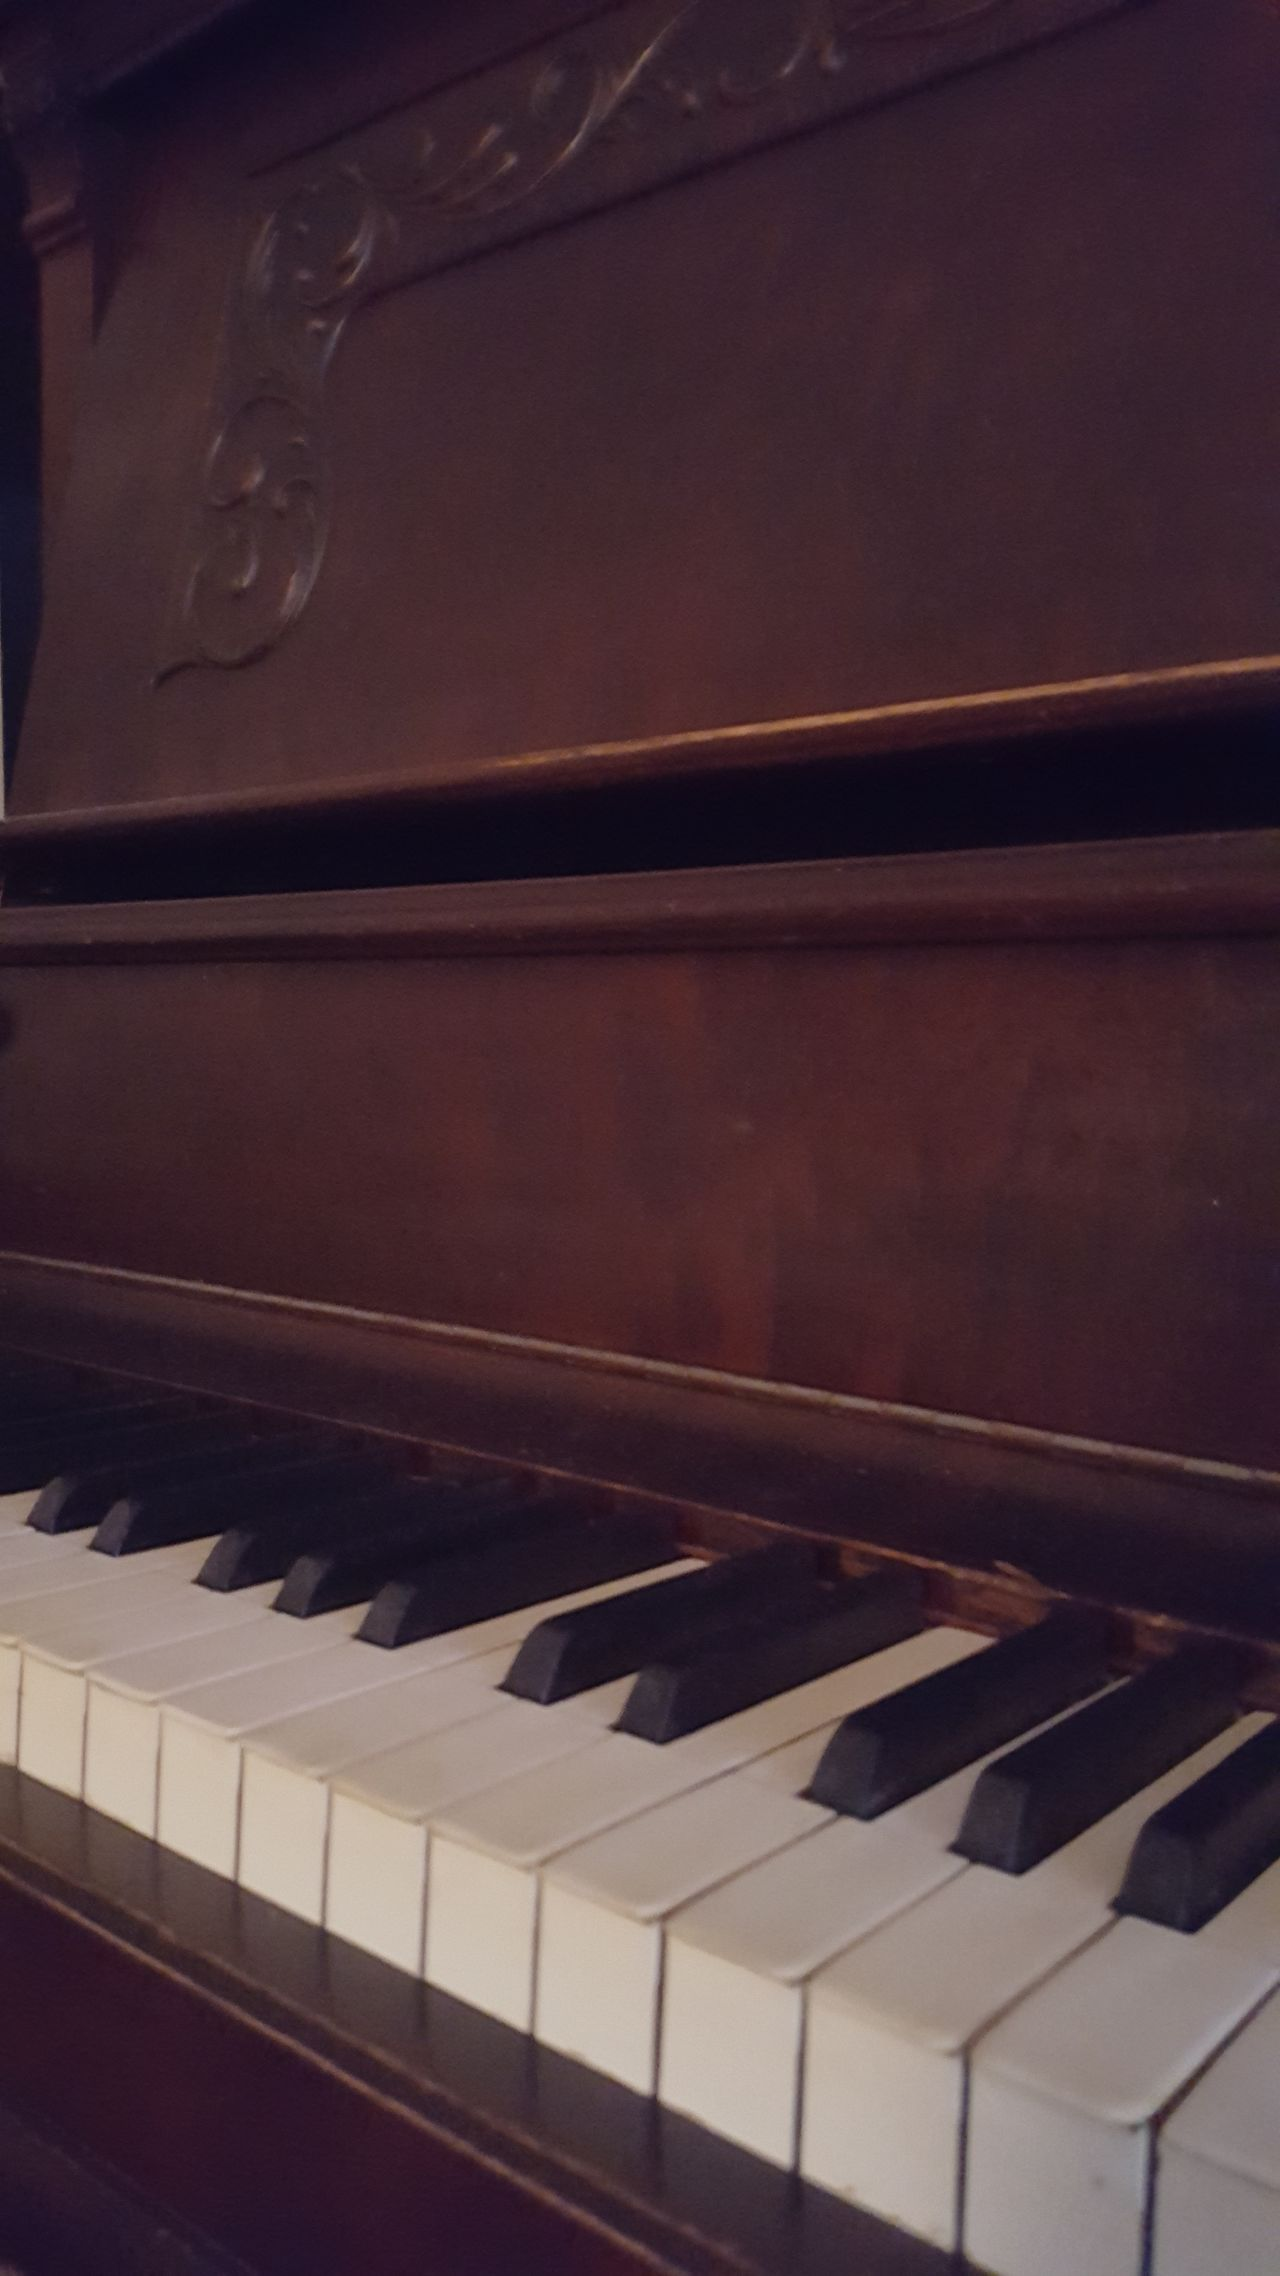 Lieblingsteil Piano Music Close-up Piano Key Musical Instrument Arts Culture And Entertainment Vintage Music Retro Piano Moments